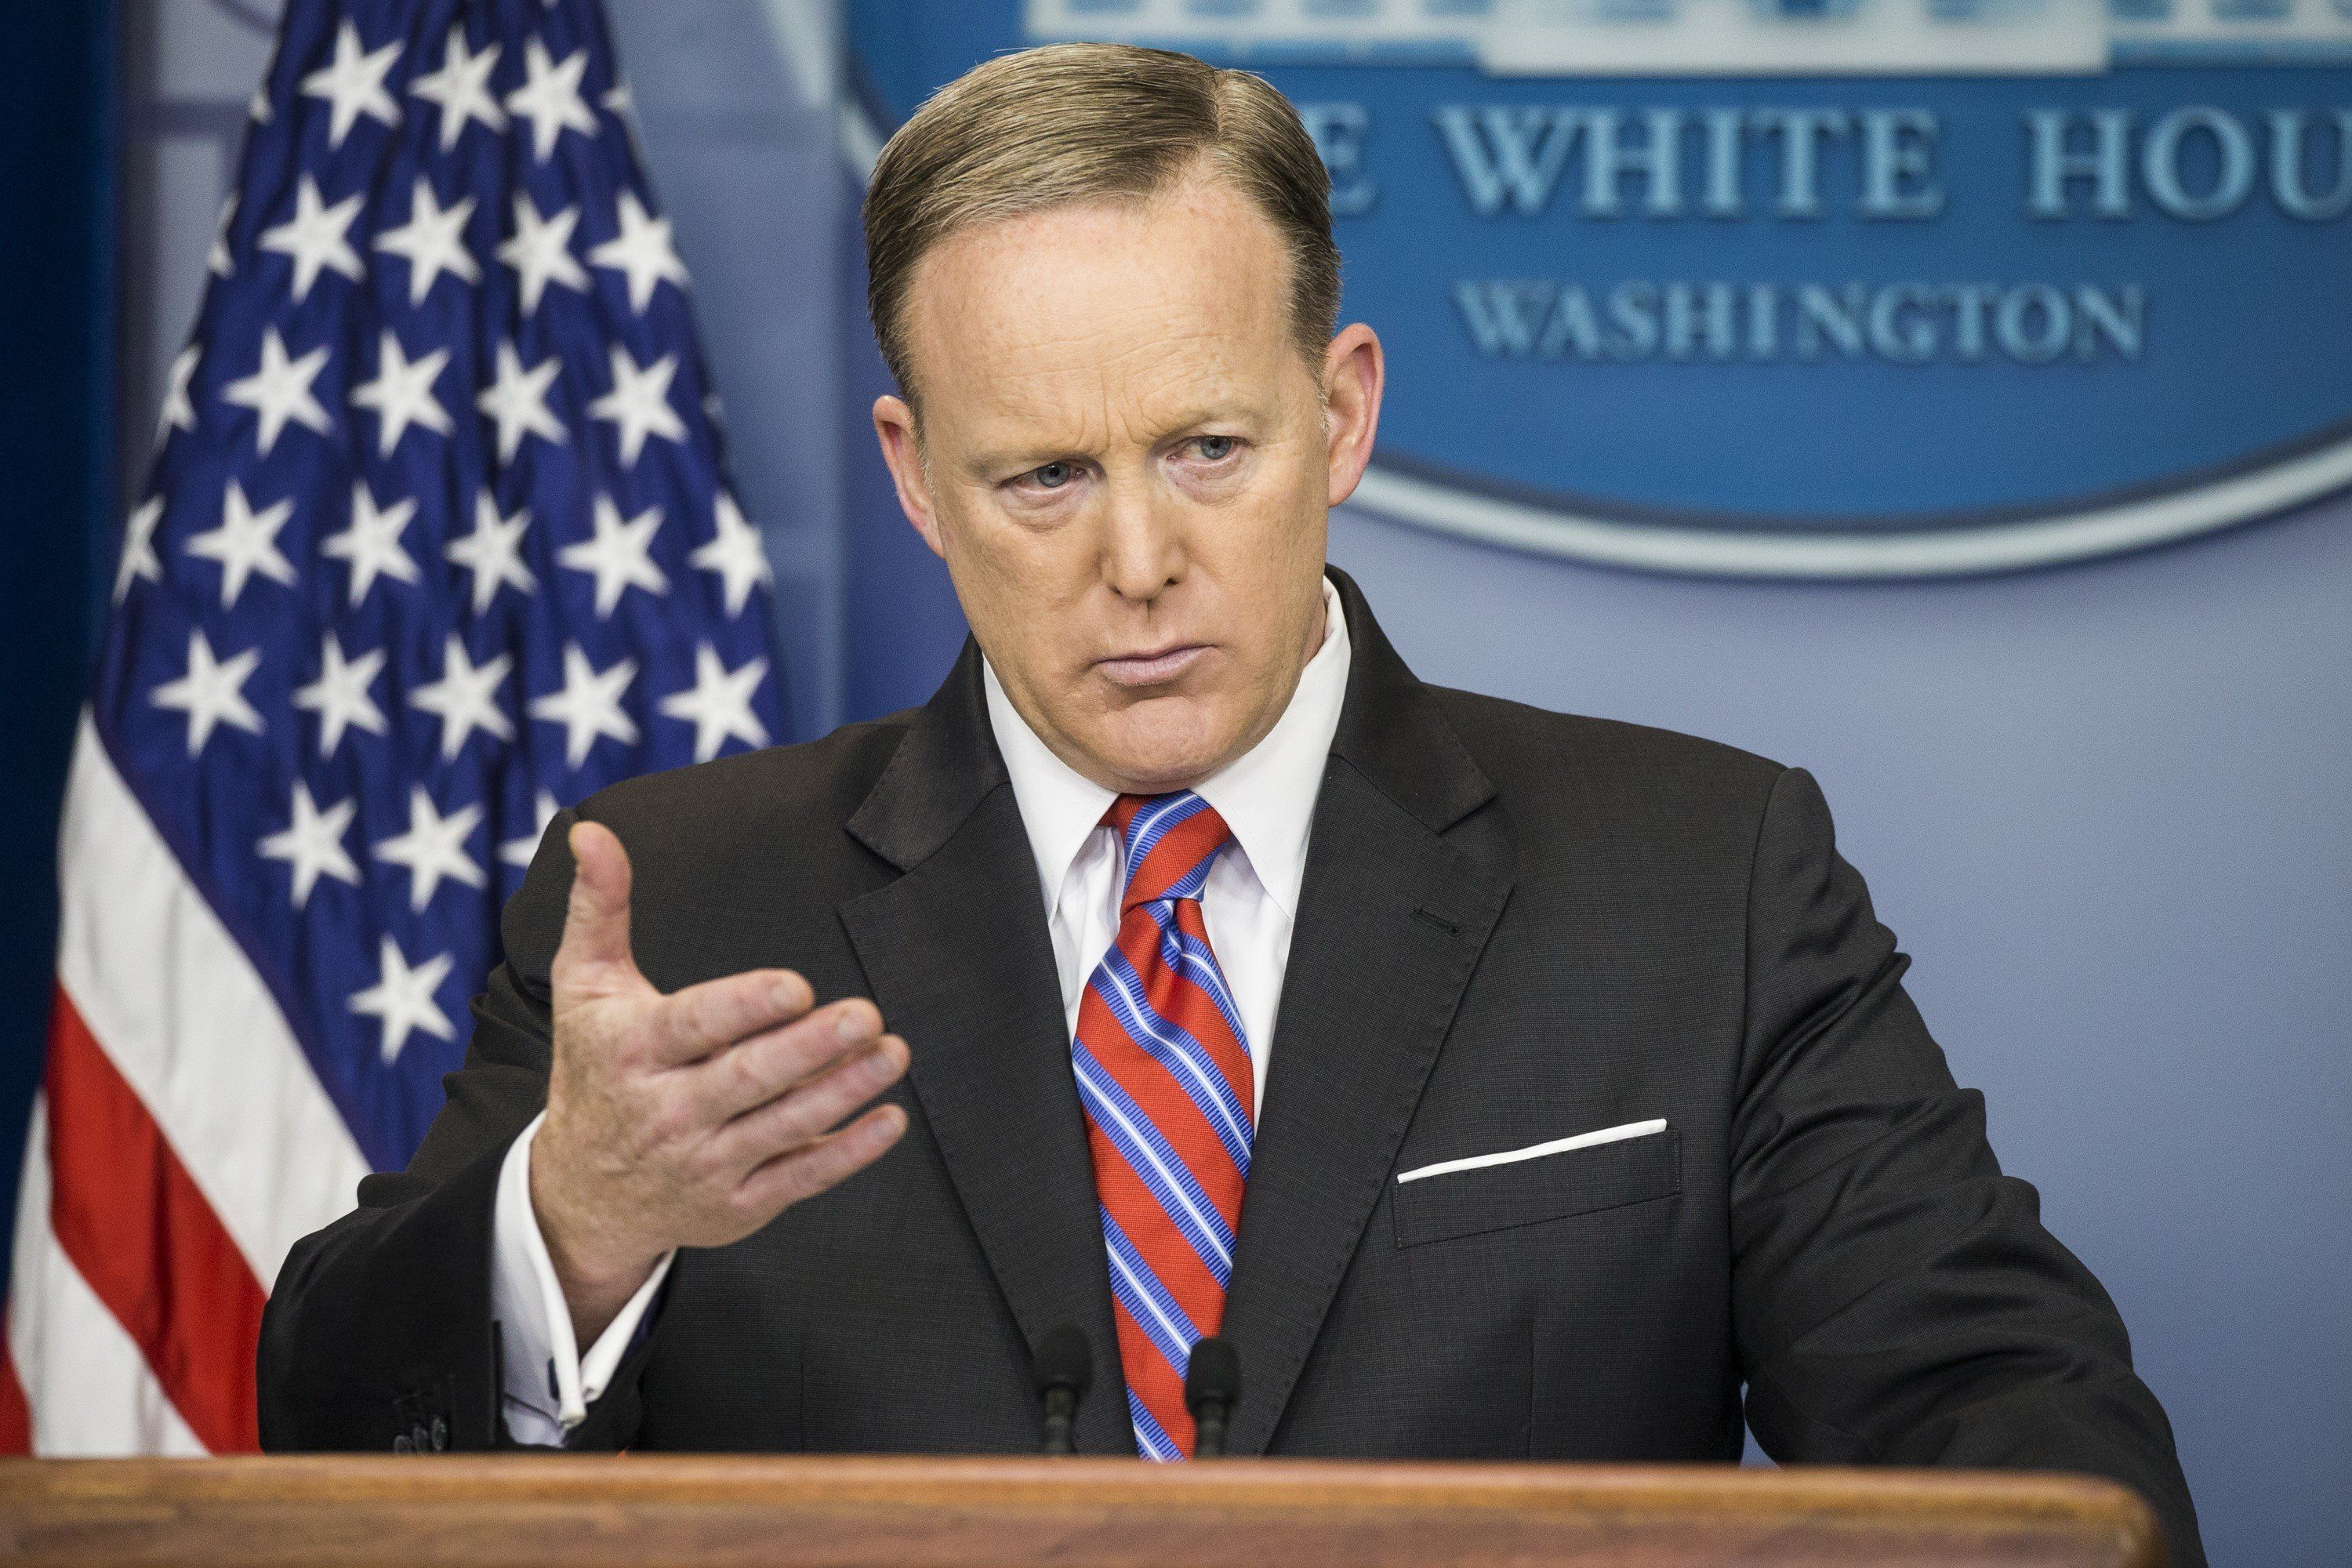 WASHINGTON, USA - MARCH 28: White Press Secretary Sean Spicer speaks during the daily press briefing at the White House in Washington, USA on March 28, 2017. (Photo by Samuel Corum/Anadolu Agency/Getty Images)